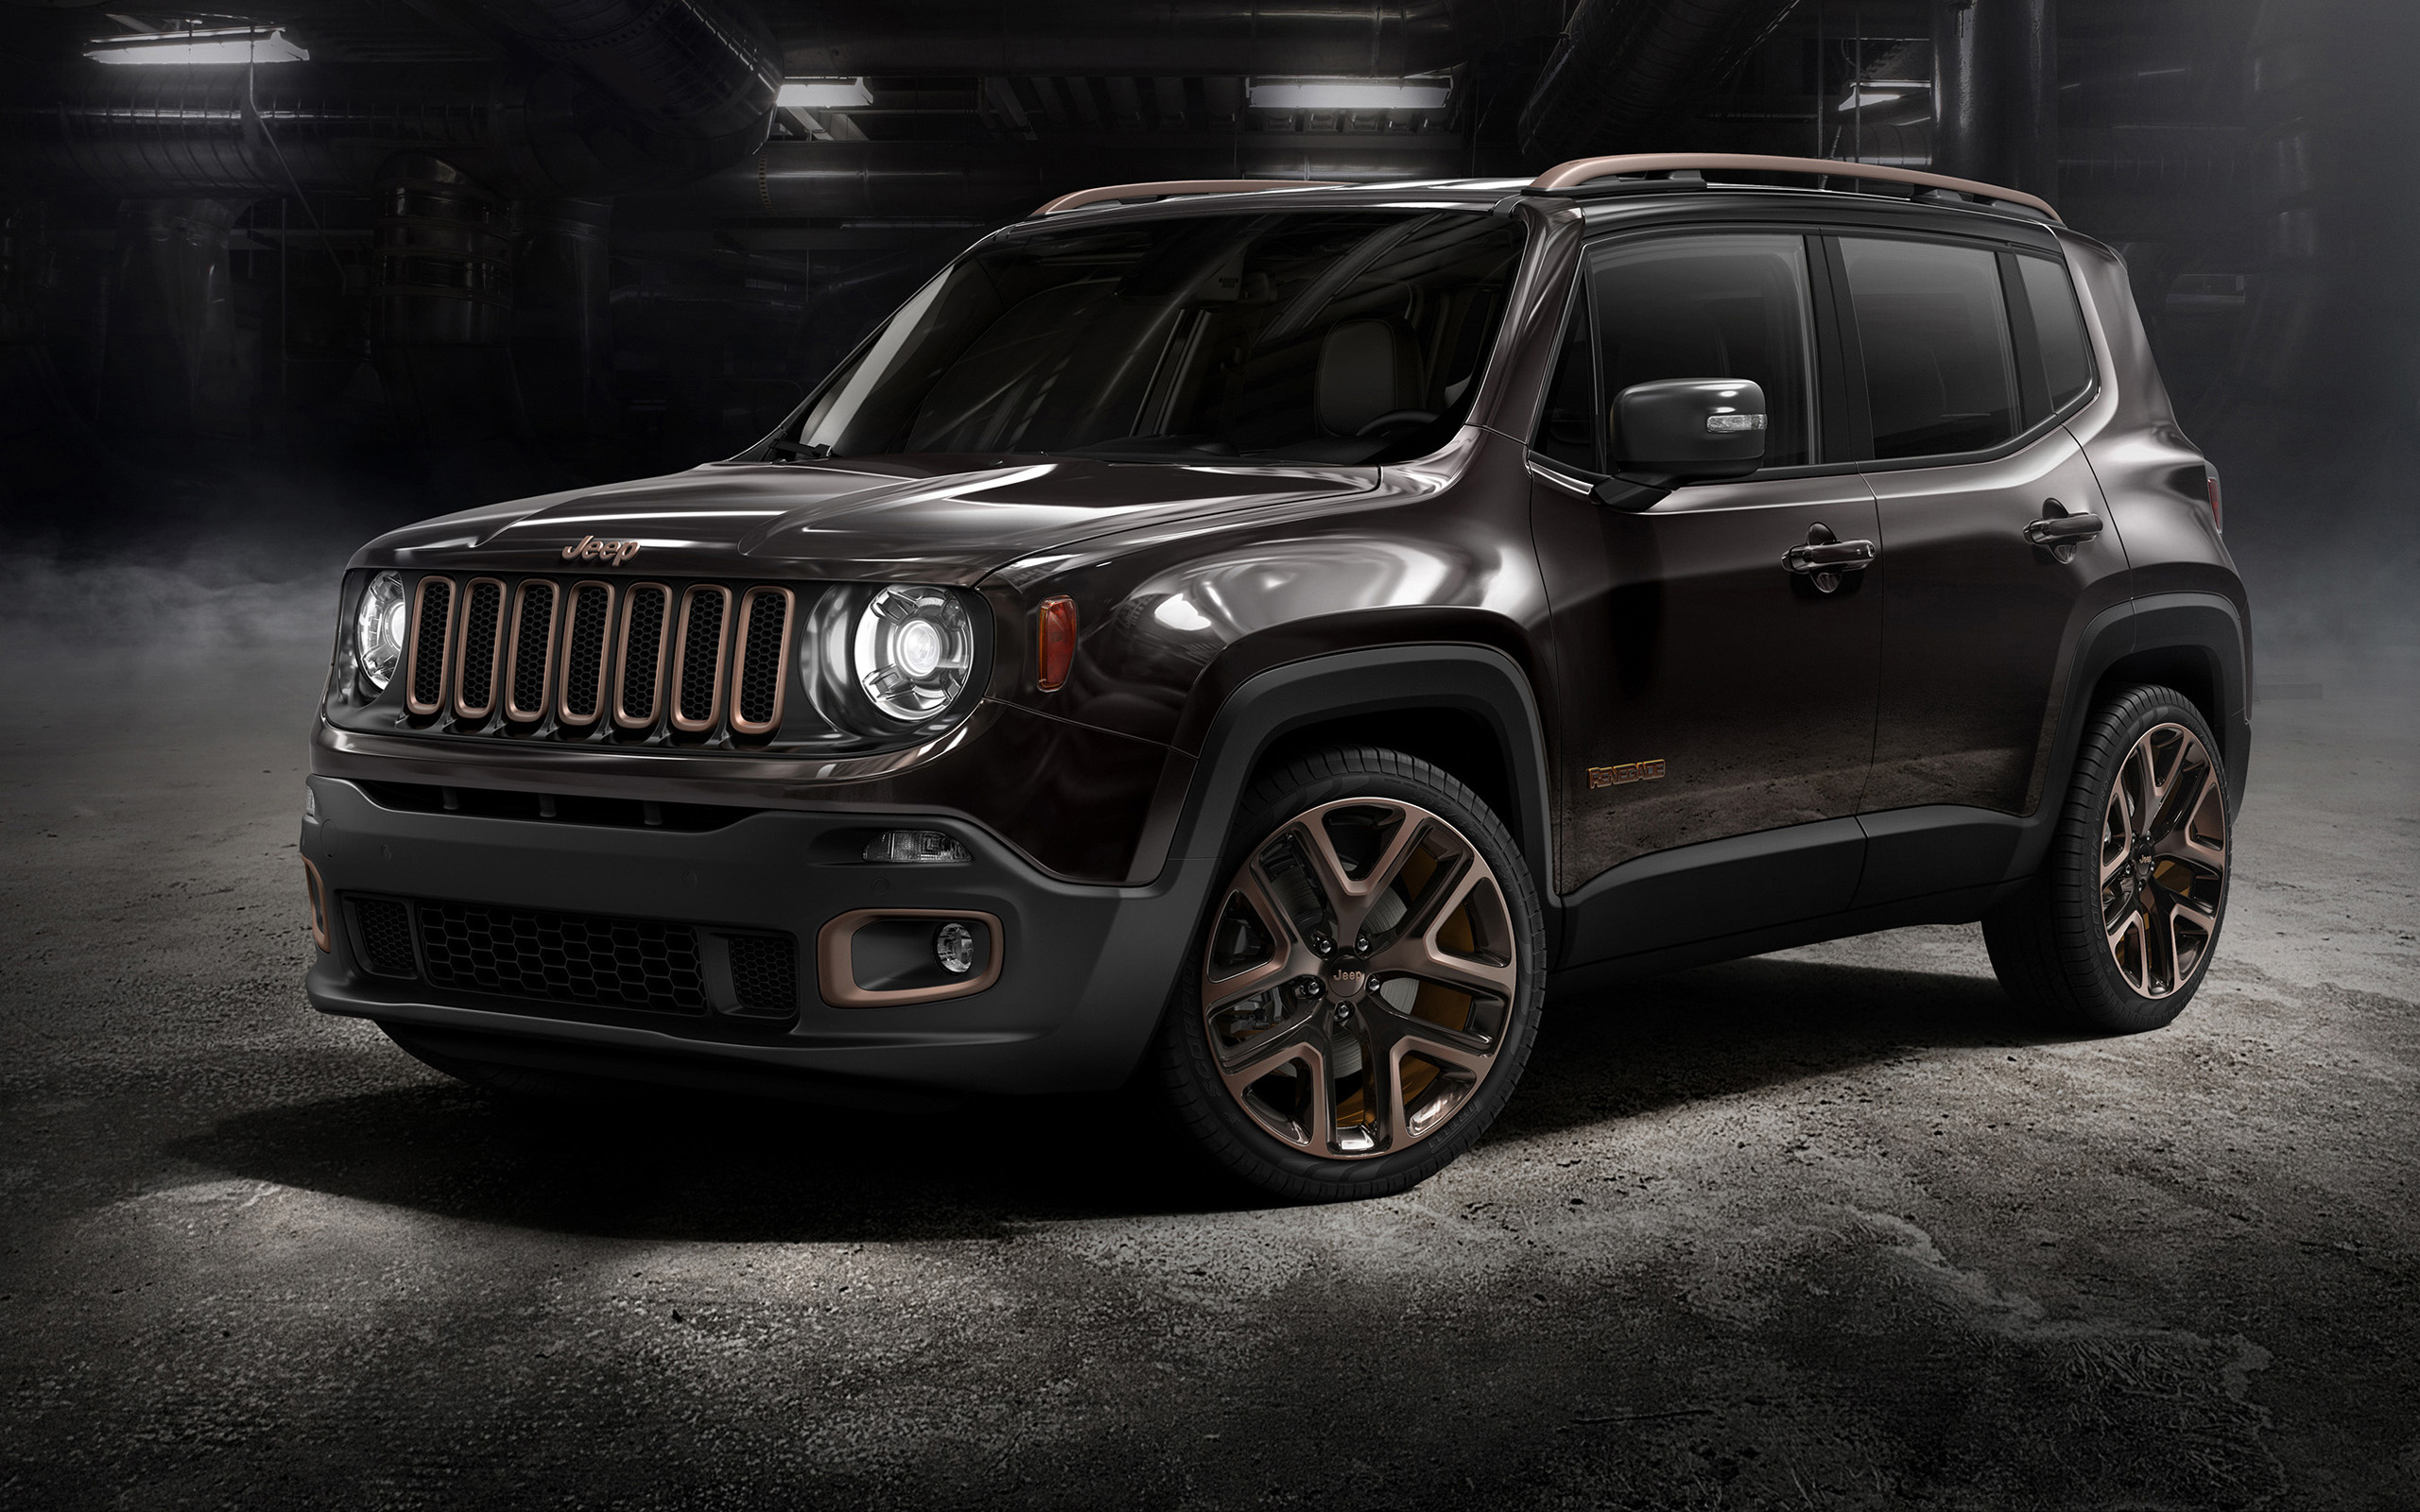 2014 jeep renegade zi you xia concept wallpaper hd car wallpapers id 4432. Black Bedroom Furniture Sets. Home Design Ideas